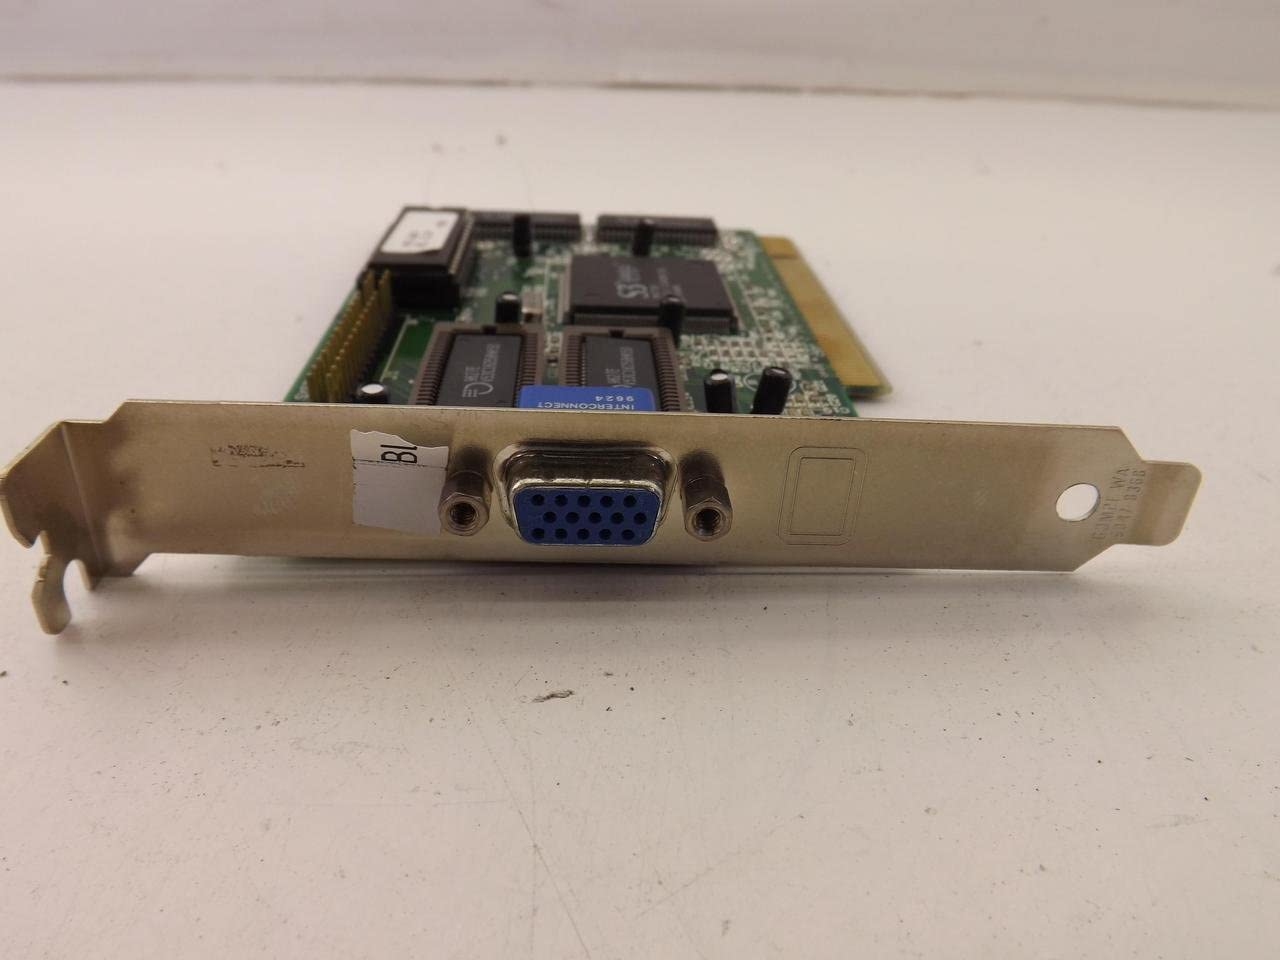 STB Systems 2MB S3 Virge 325 PCI Video NEW 210-0203-003 Video Card STB